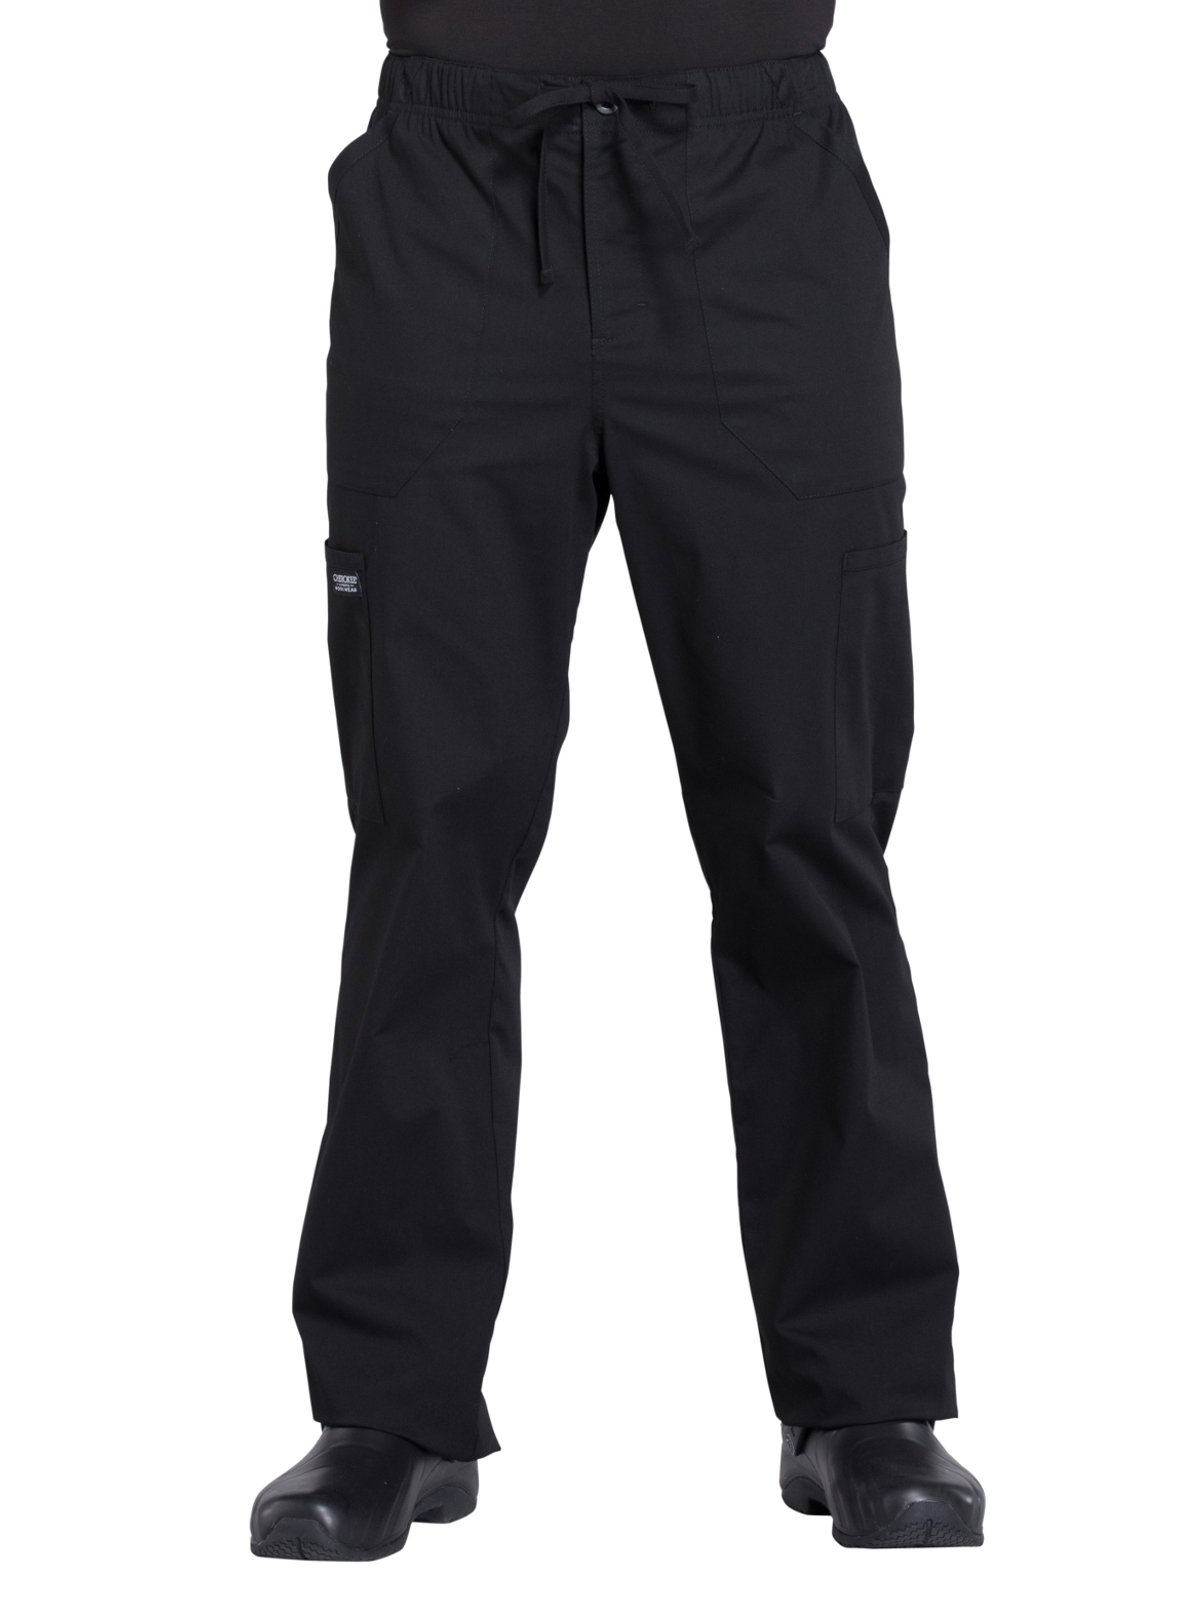 Cherokee WW Professionals WW190 Men's Tapered Leg Drawstring Cargo Pant Black M